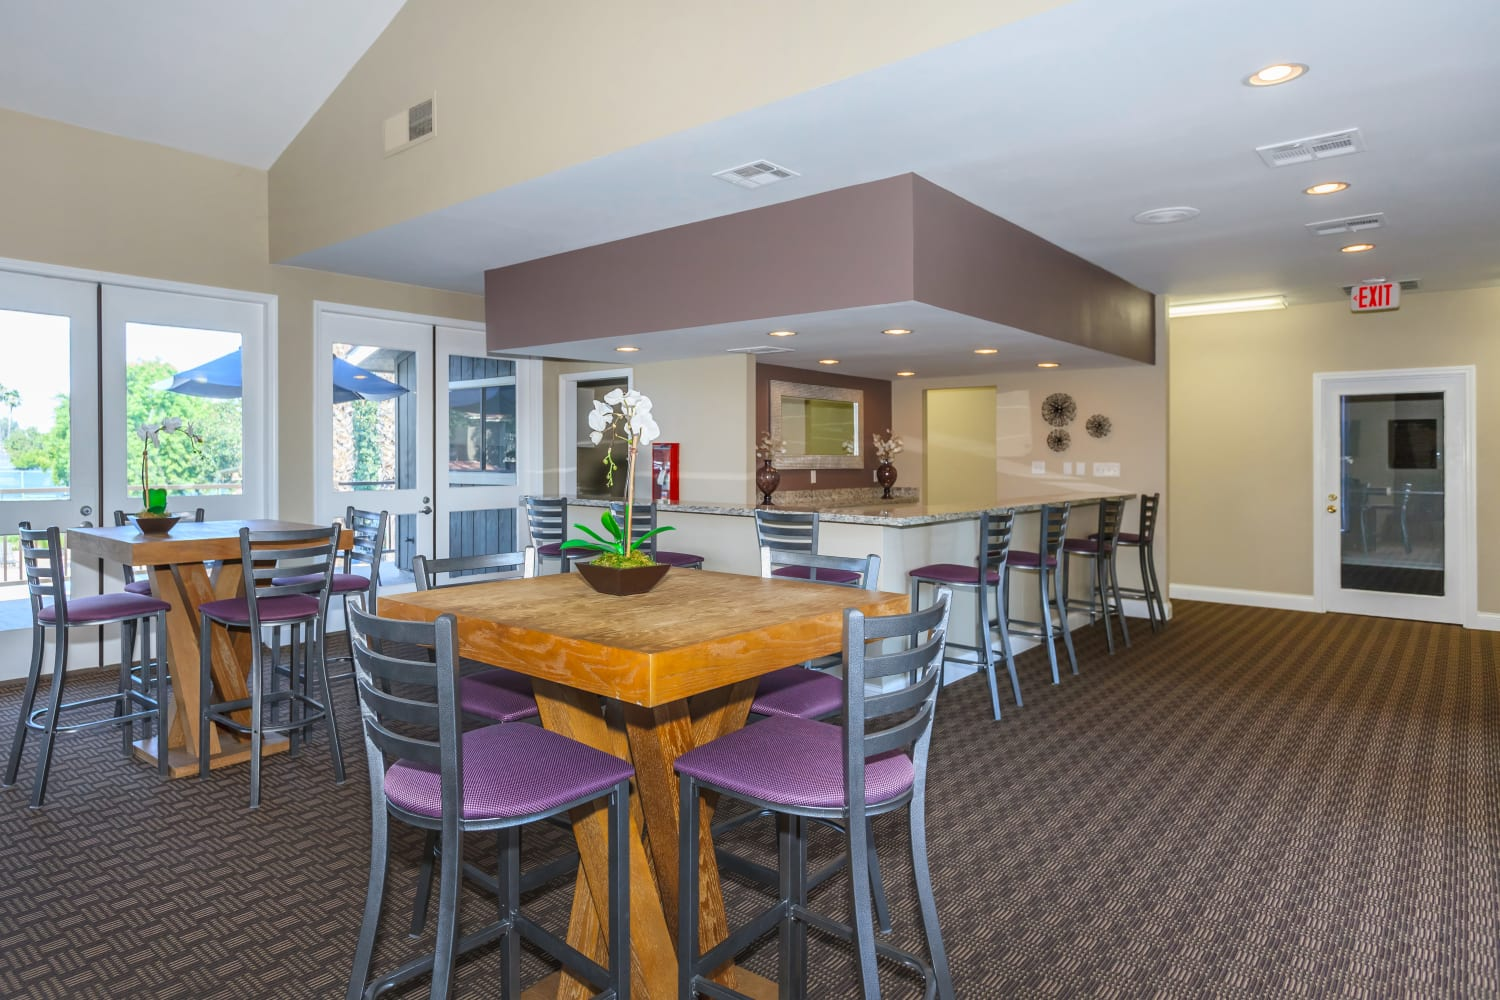 Community dining area at Parcwood Apartments in Corona, California